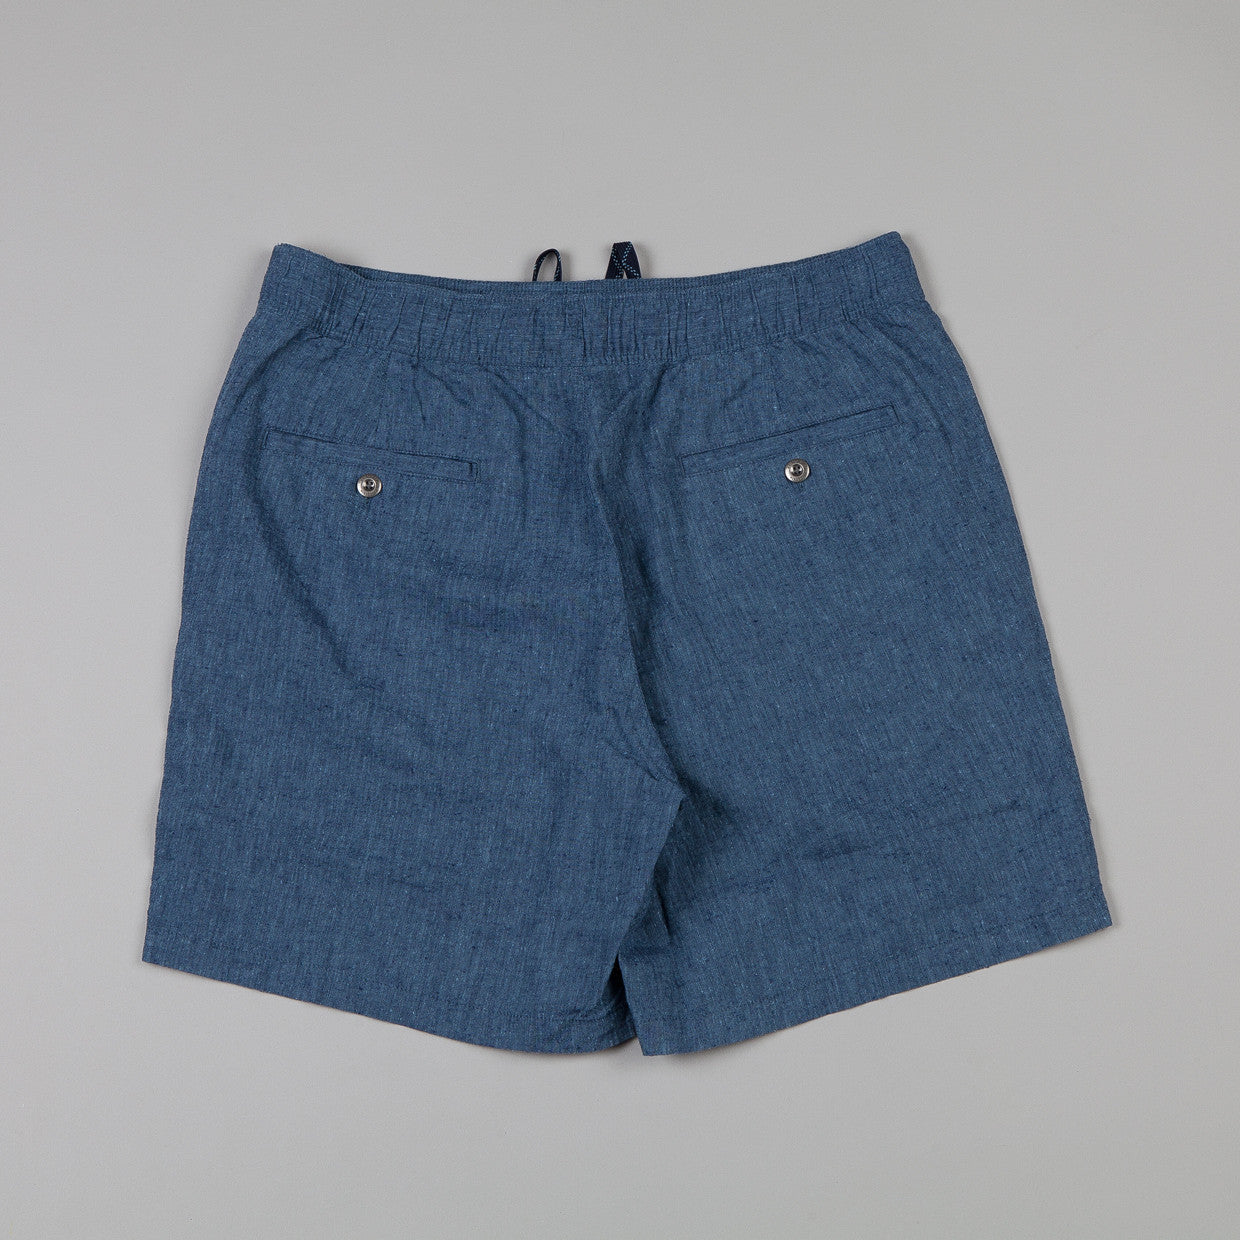 "Patagonia Baggies™ Naturals 7"" Shorts Buckland : Glass Blue"